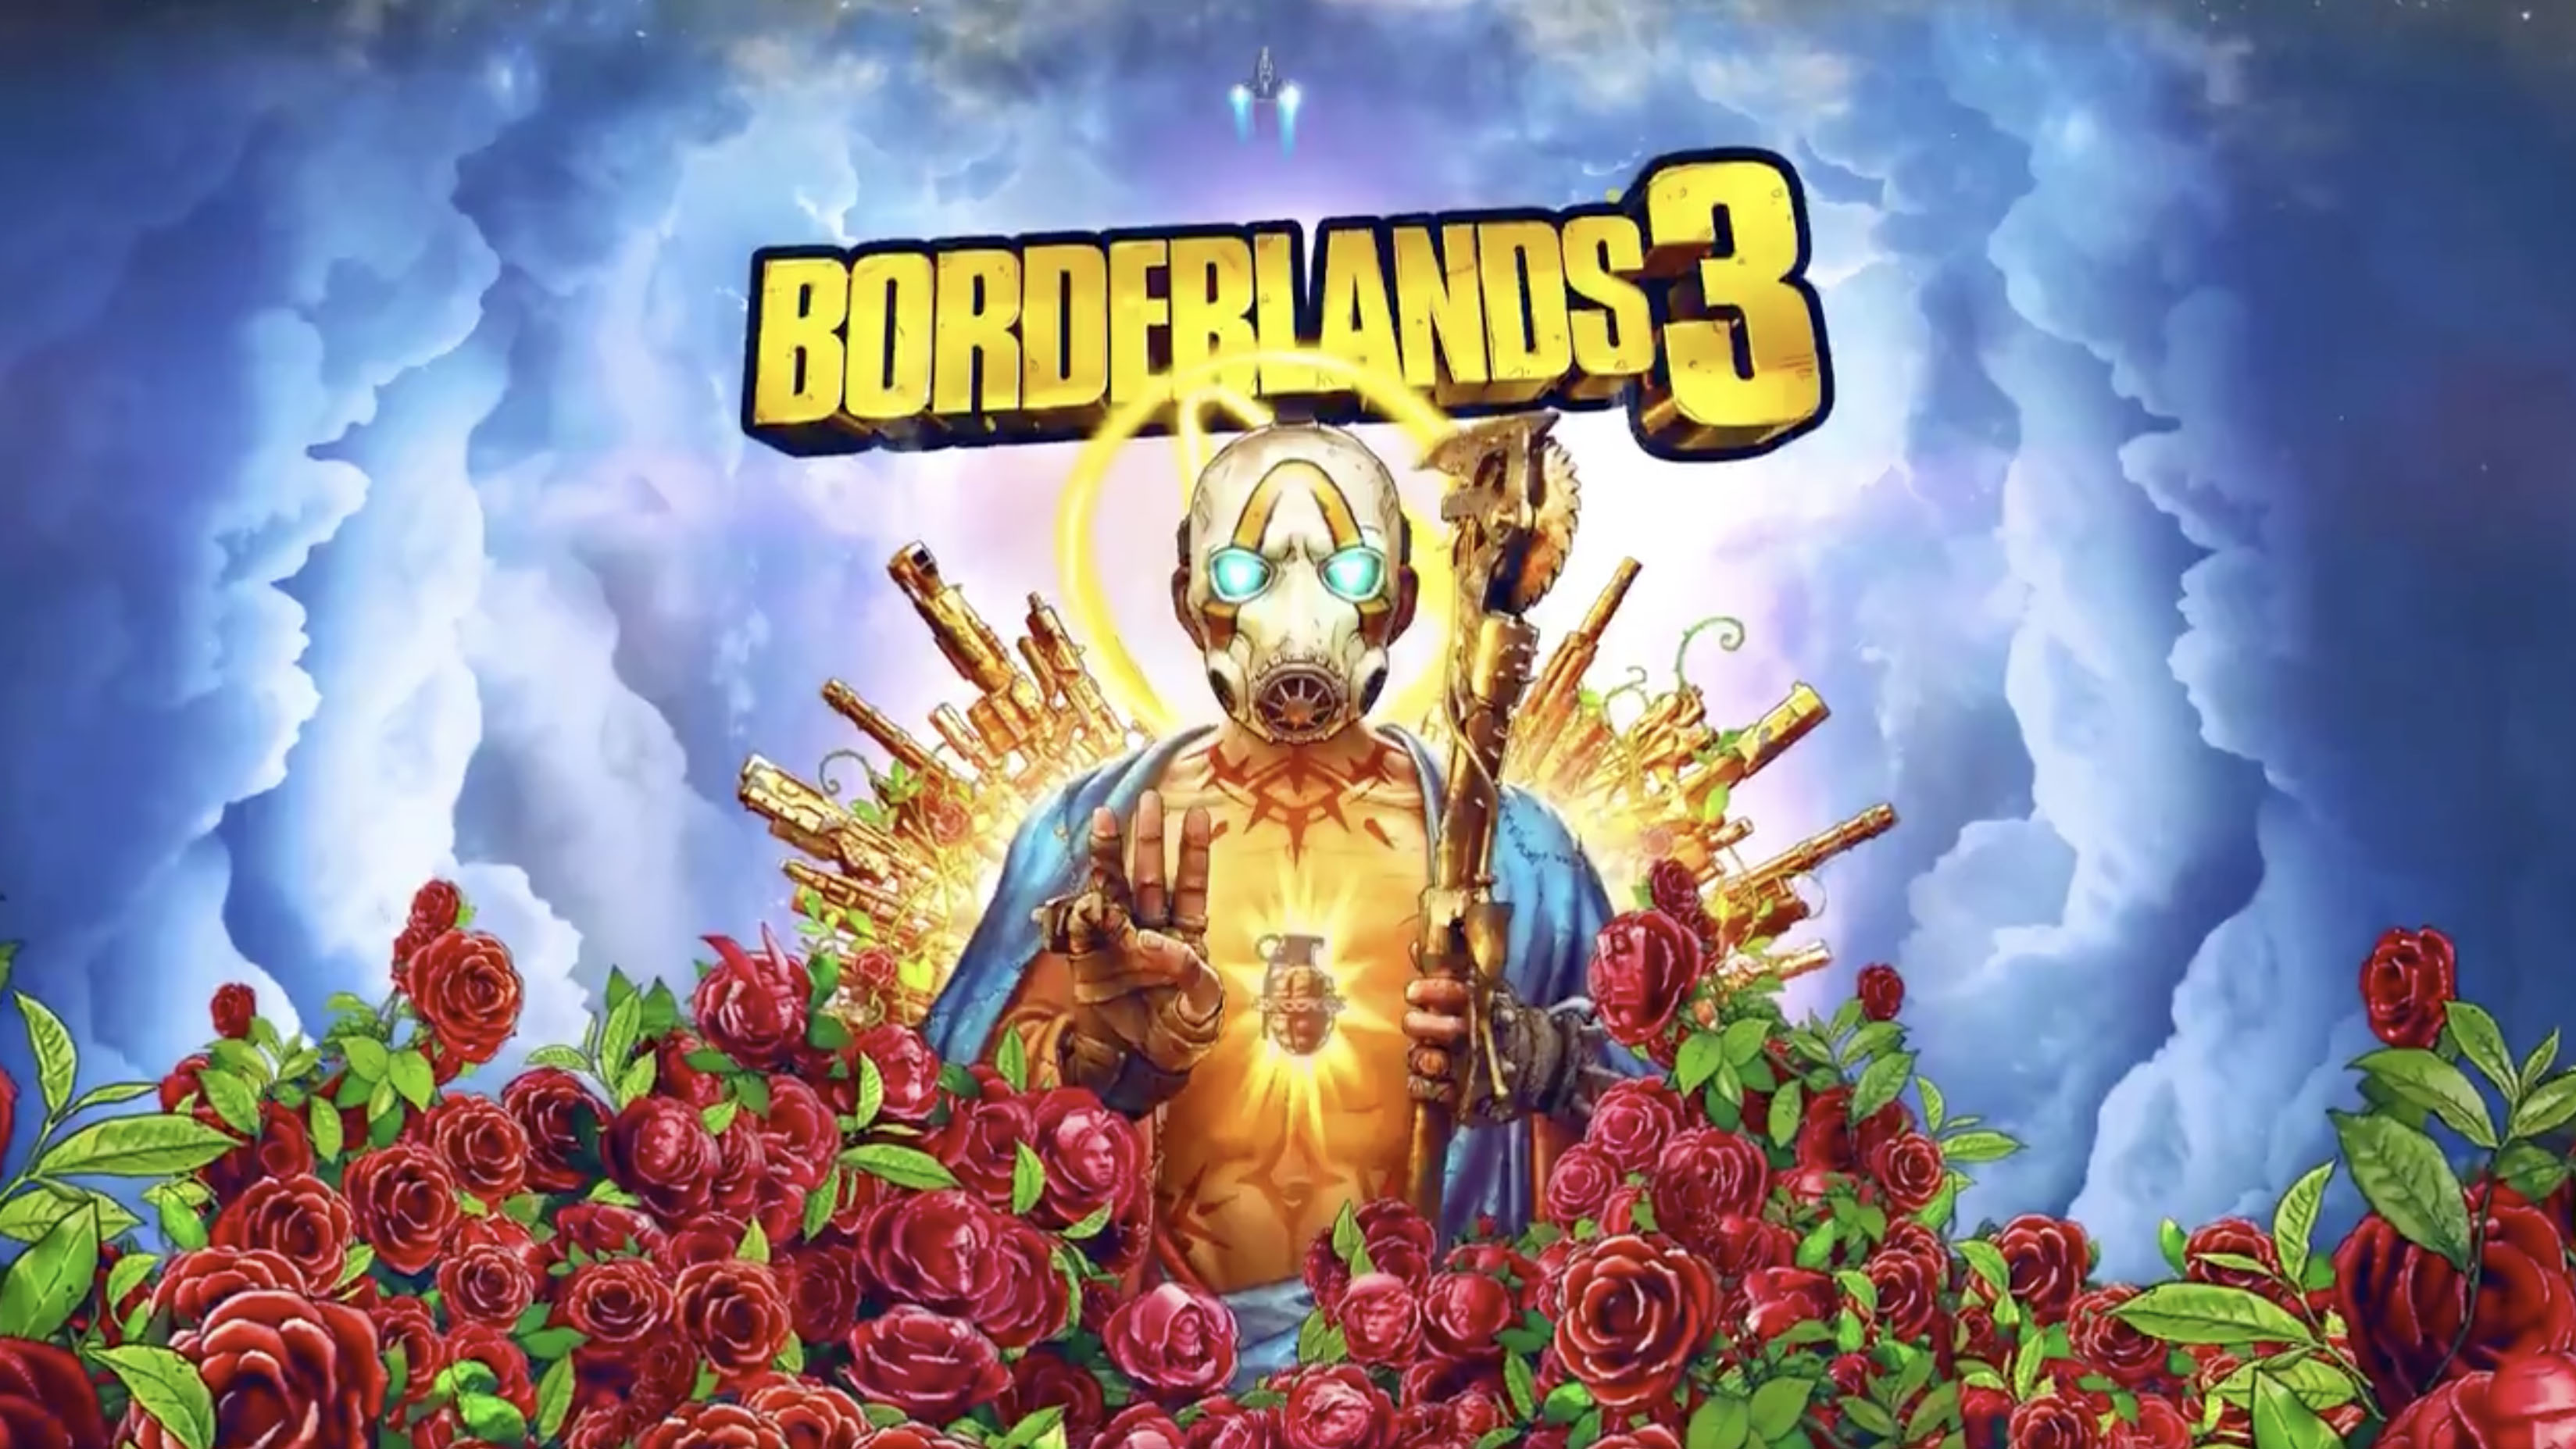 Borderlands 3: release date, news and trailers for the next